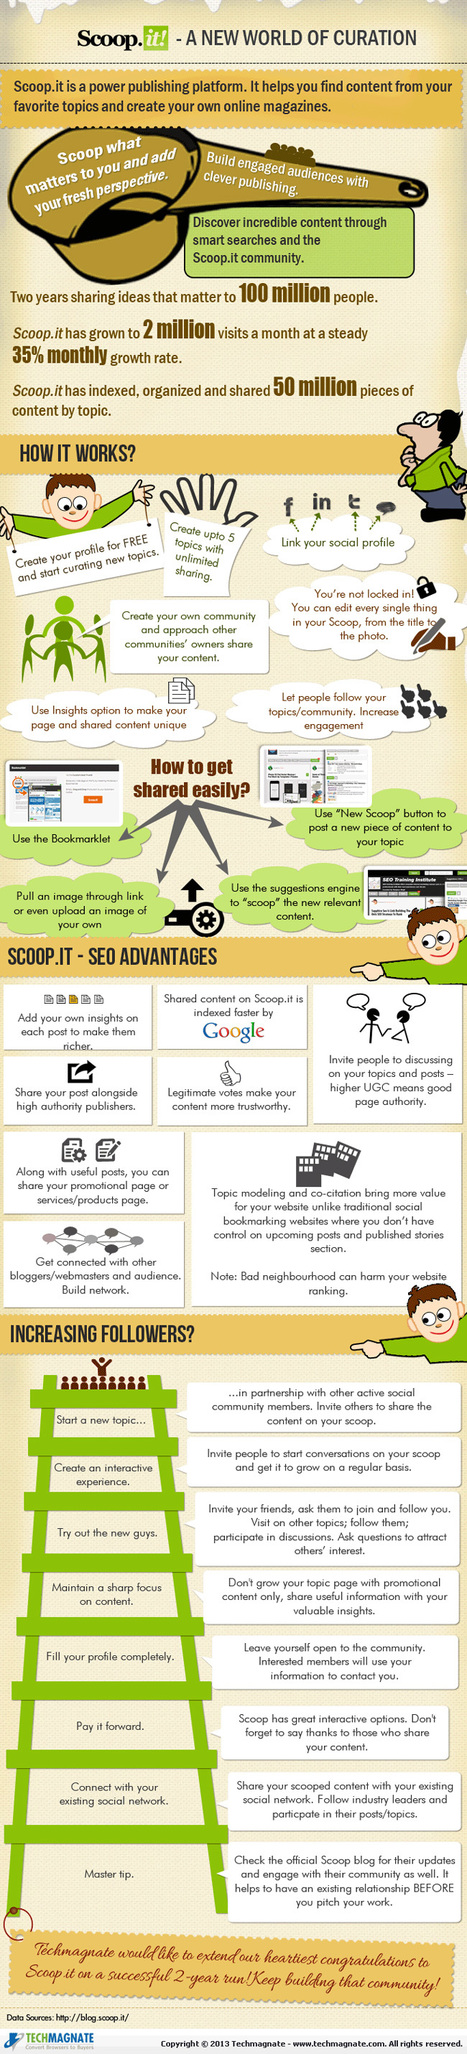 Scoop.It for SEO – A New World of Curation [Infographic] | Prionomy | Scoop.it